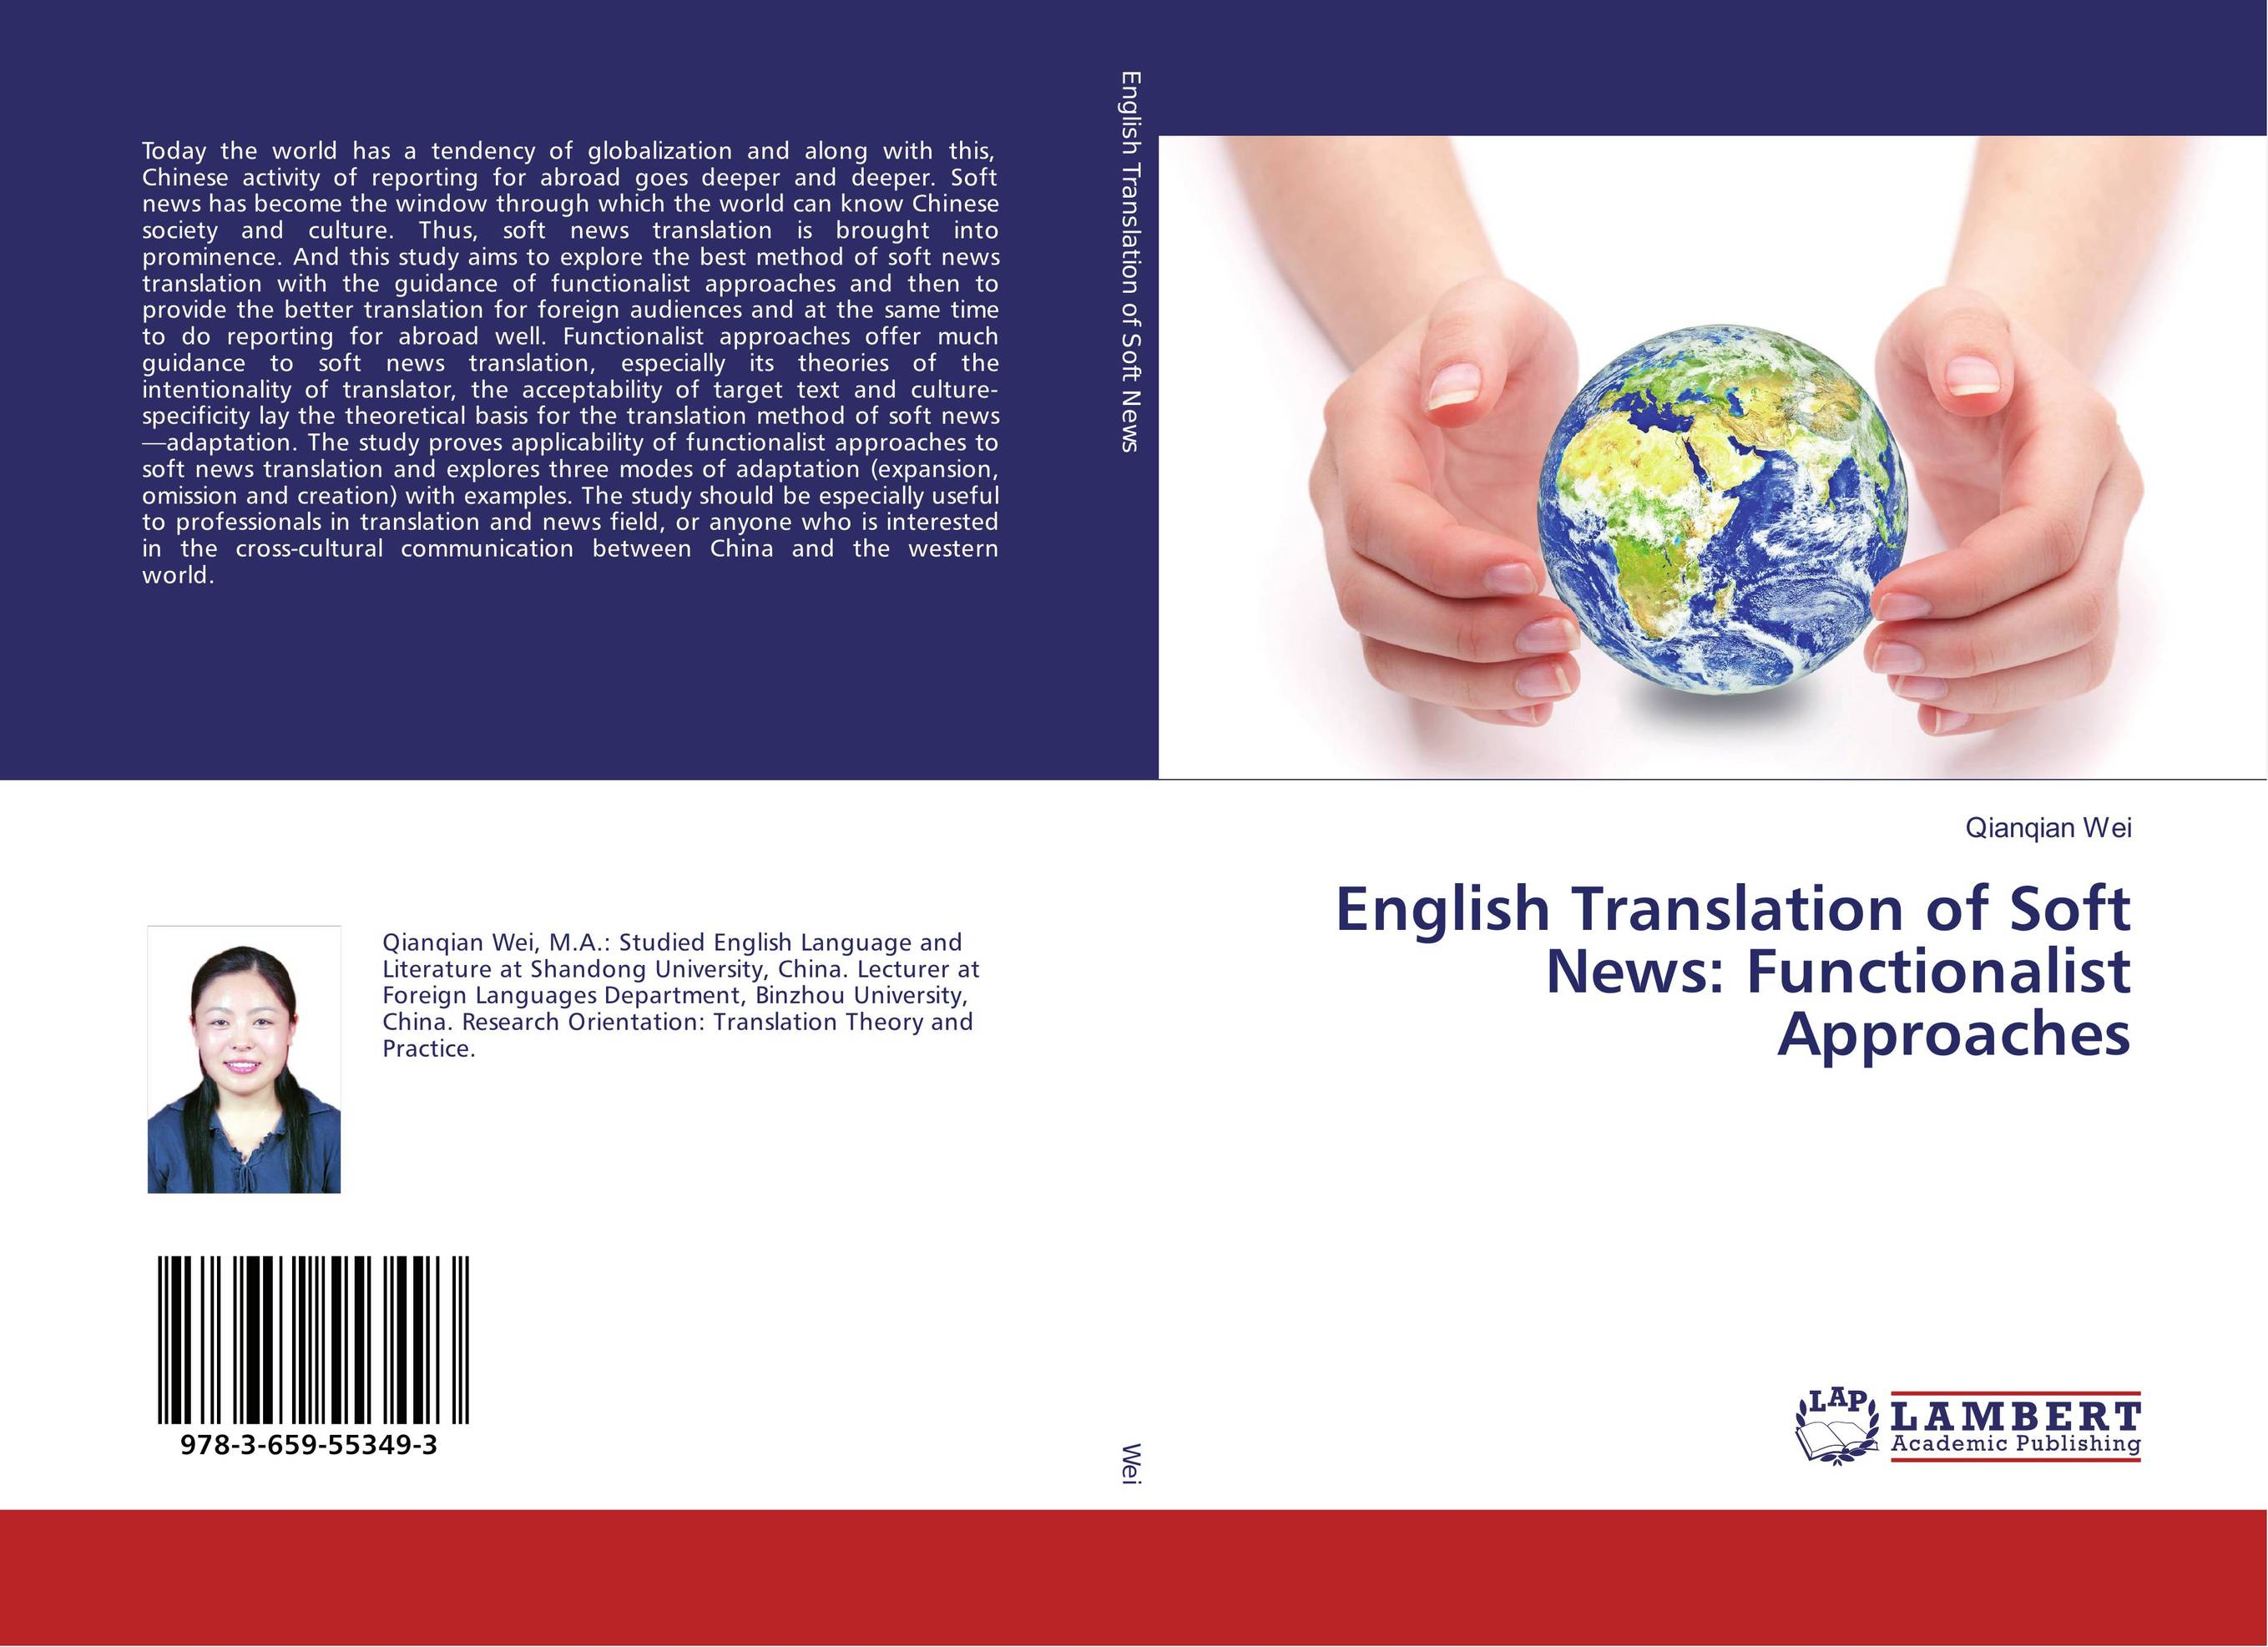 English Translation of Soft News: Functionalist Approaches the handbook of translation and cognition